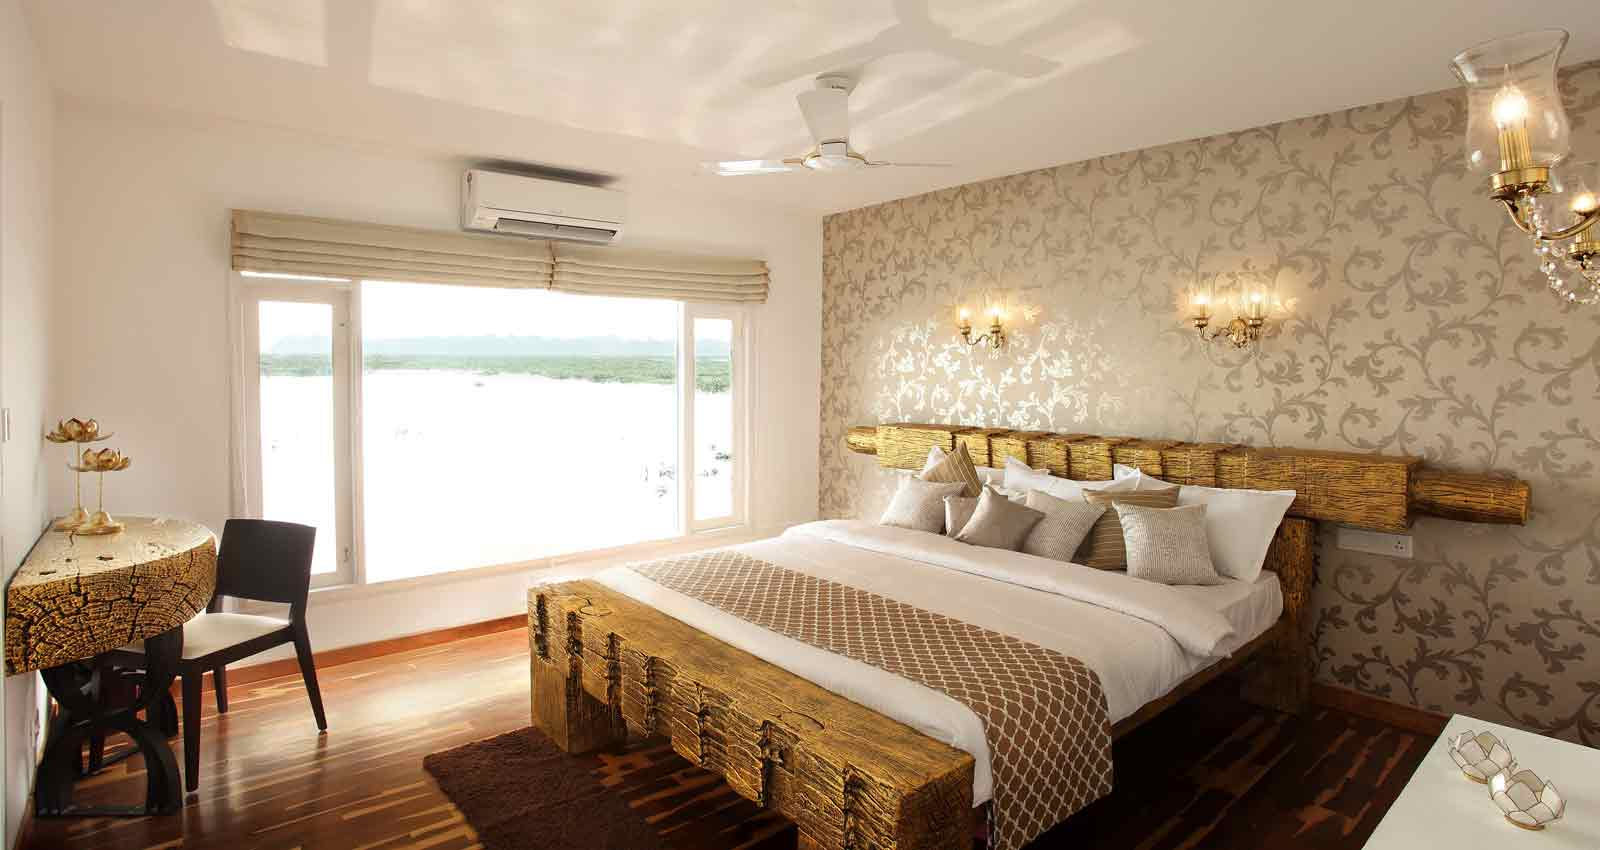 kerala houseboat,kerala luxury houseboat,kerala deluxe houseboat,boathouse,boathouse in kerala,boat house kerala price,kerala houseboat tariff,boat house,luxury boat house